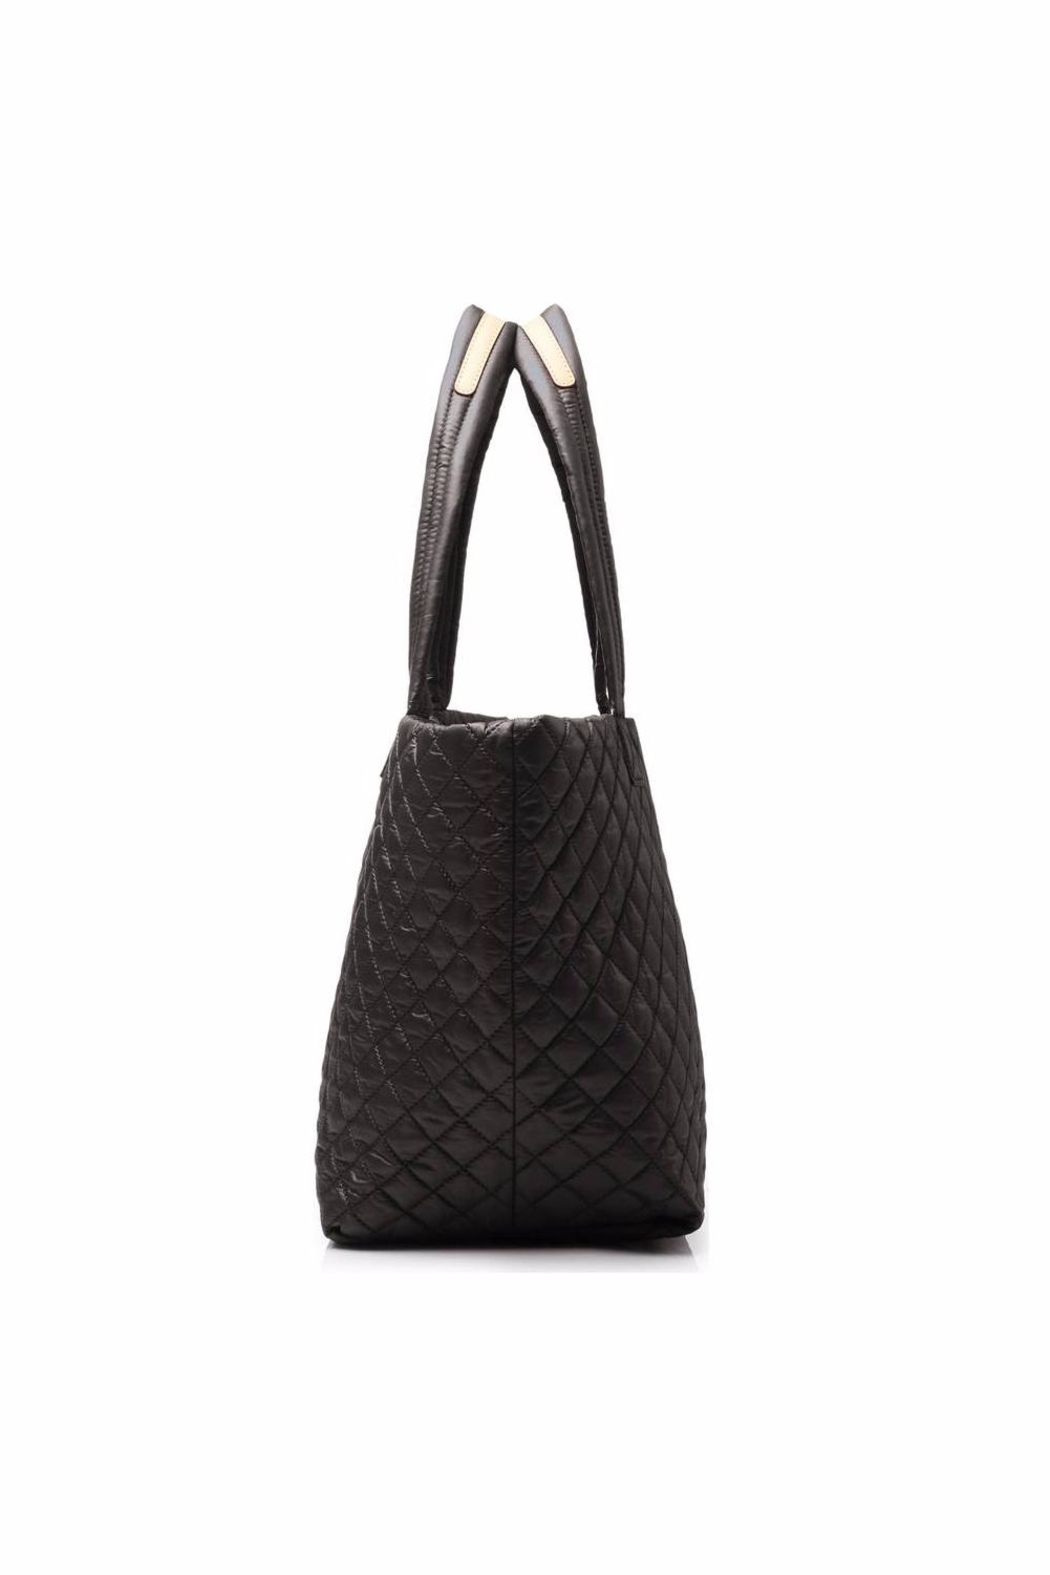 MZ Wallace Medium Metro Quilted-Tote - Side Cropped Image